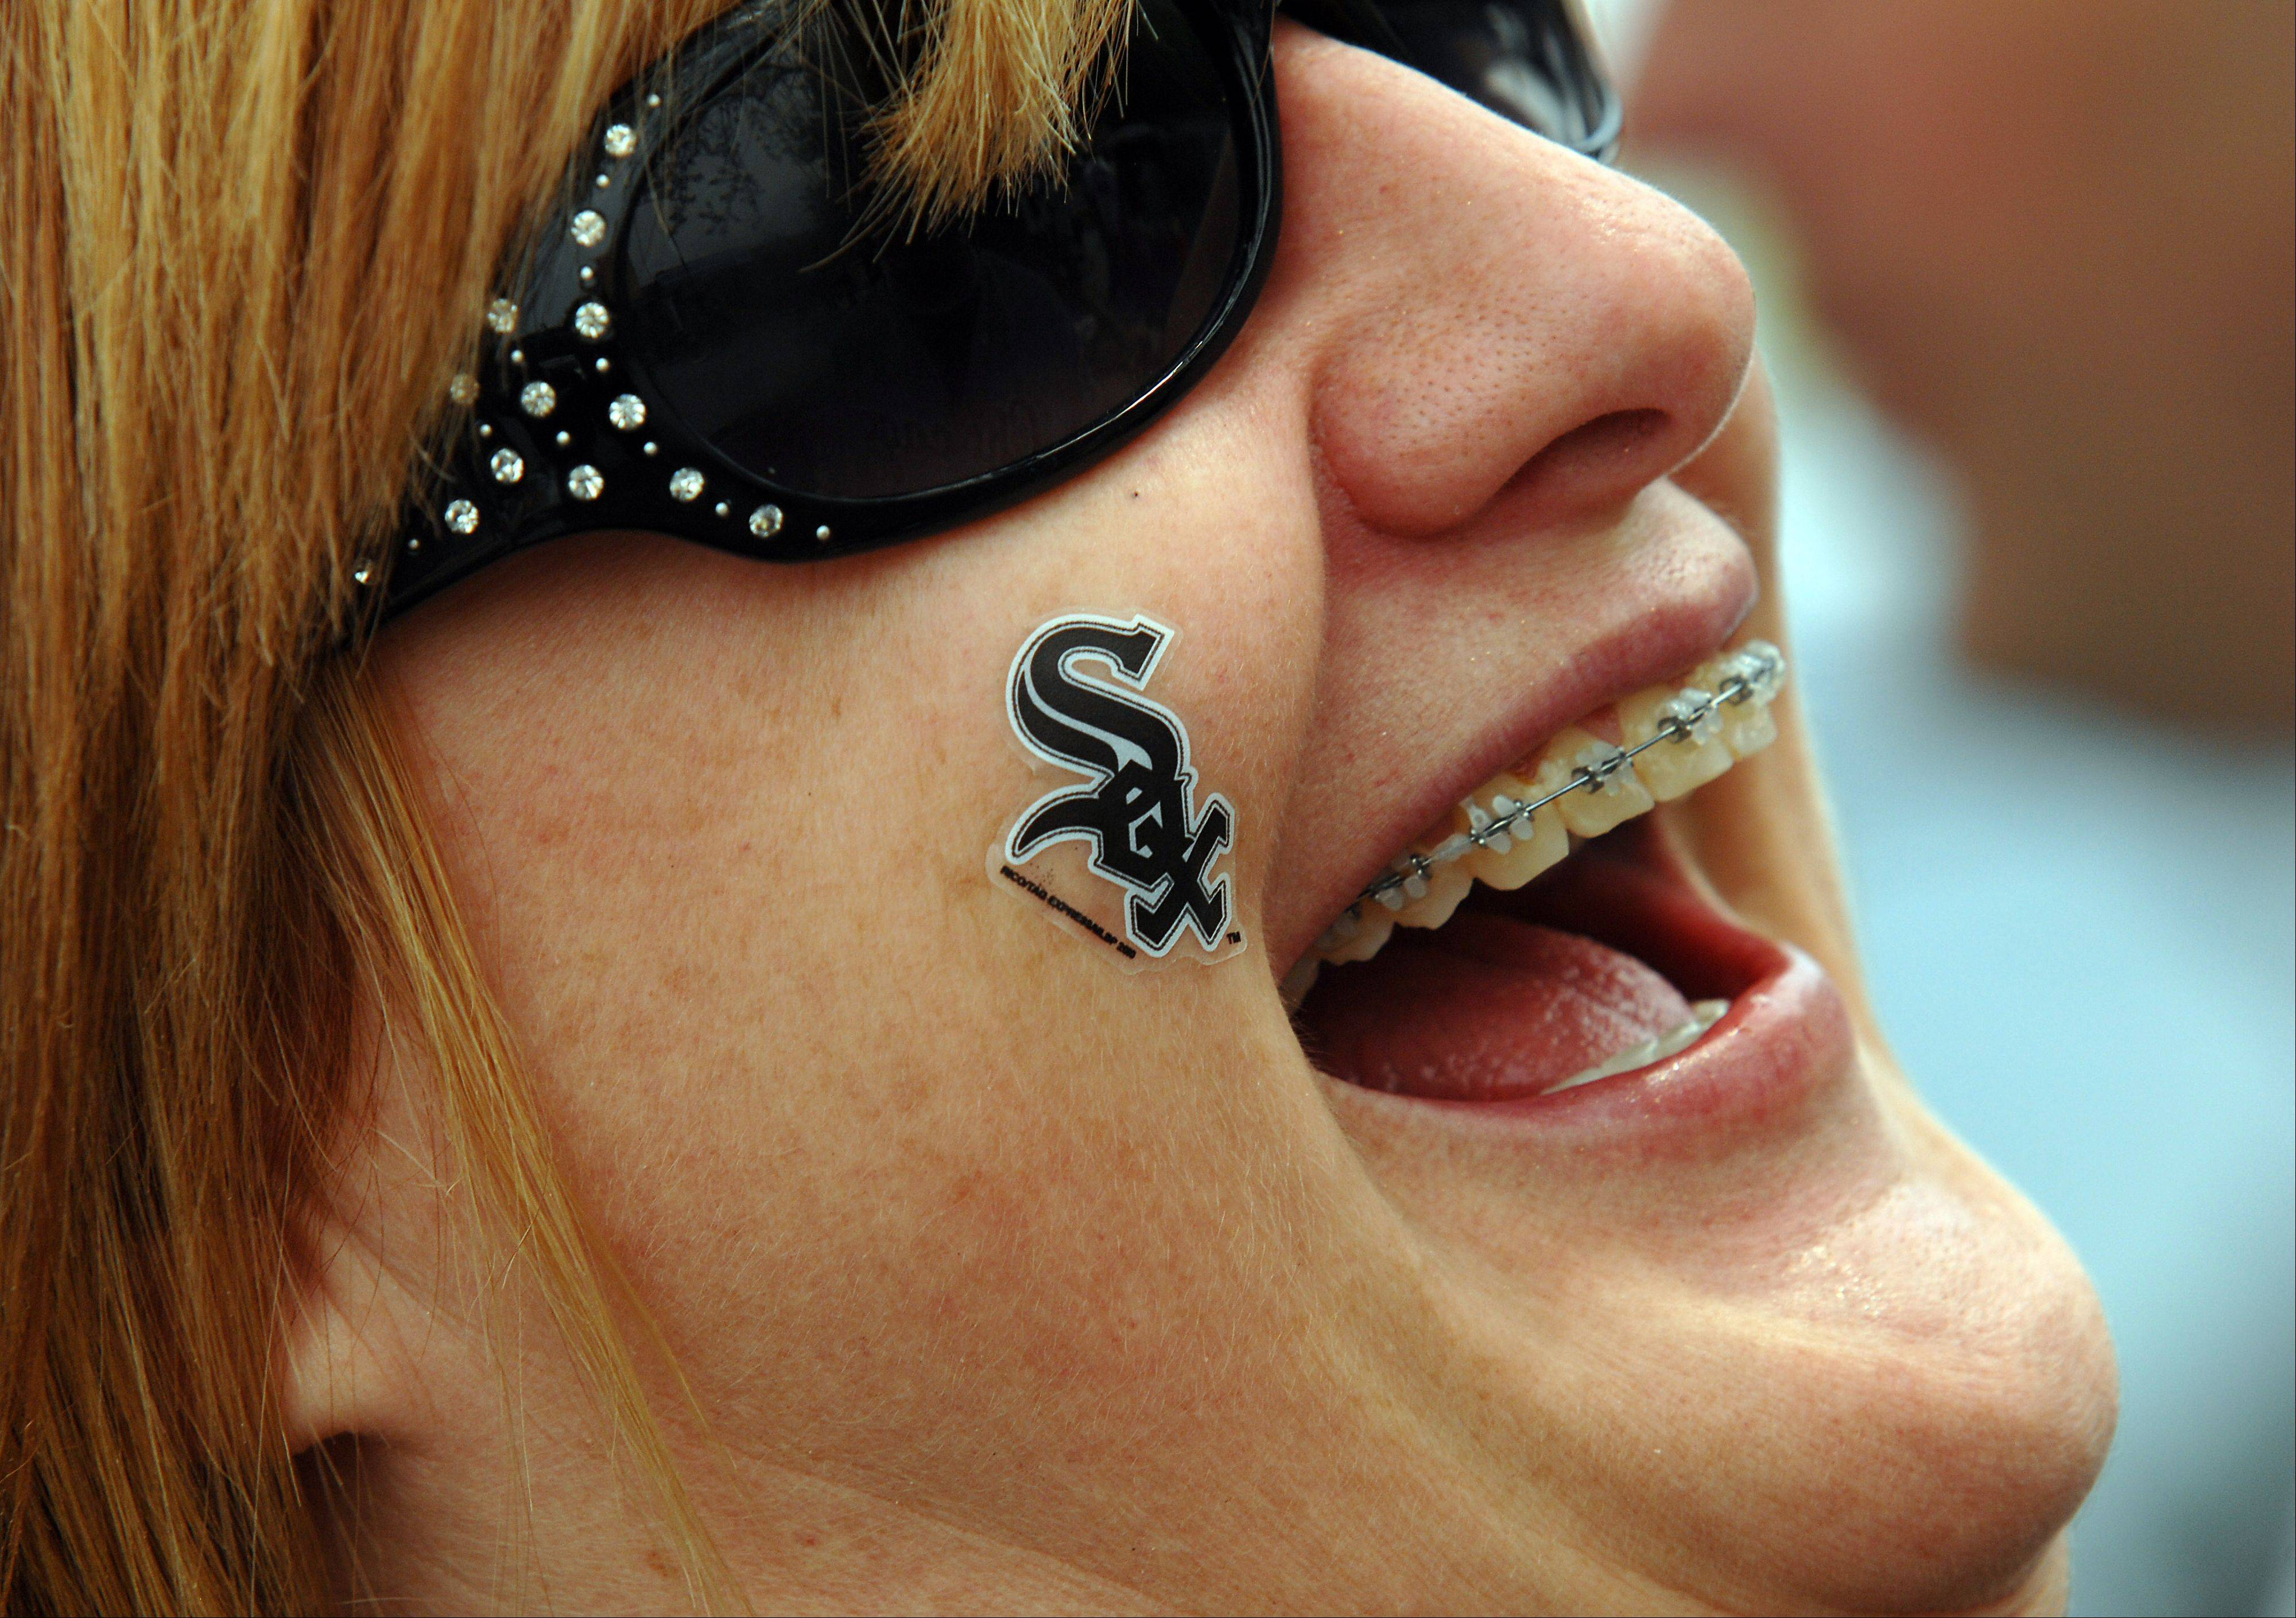 White Sox fan Carol Everett of Bolingbrook greets opening day with a smile and a laugh.